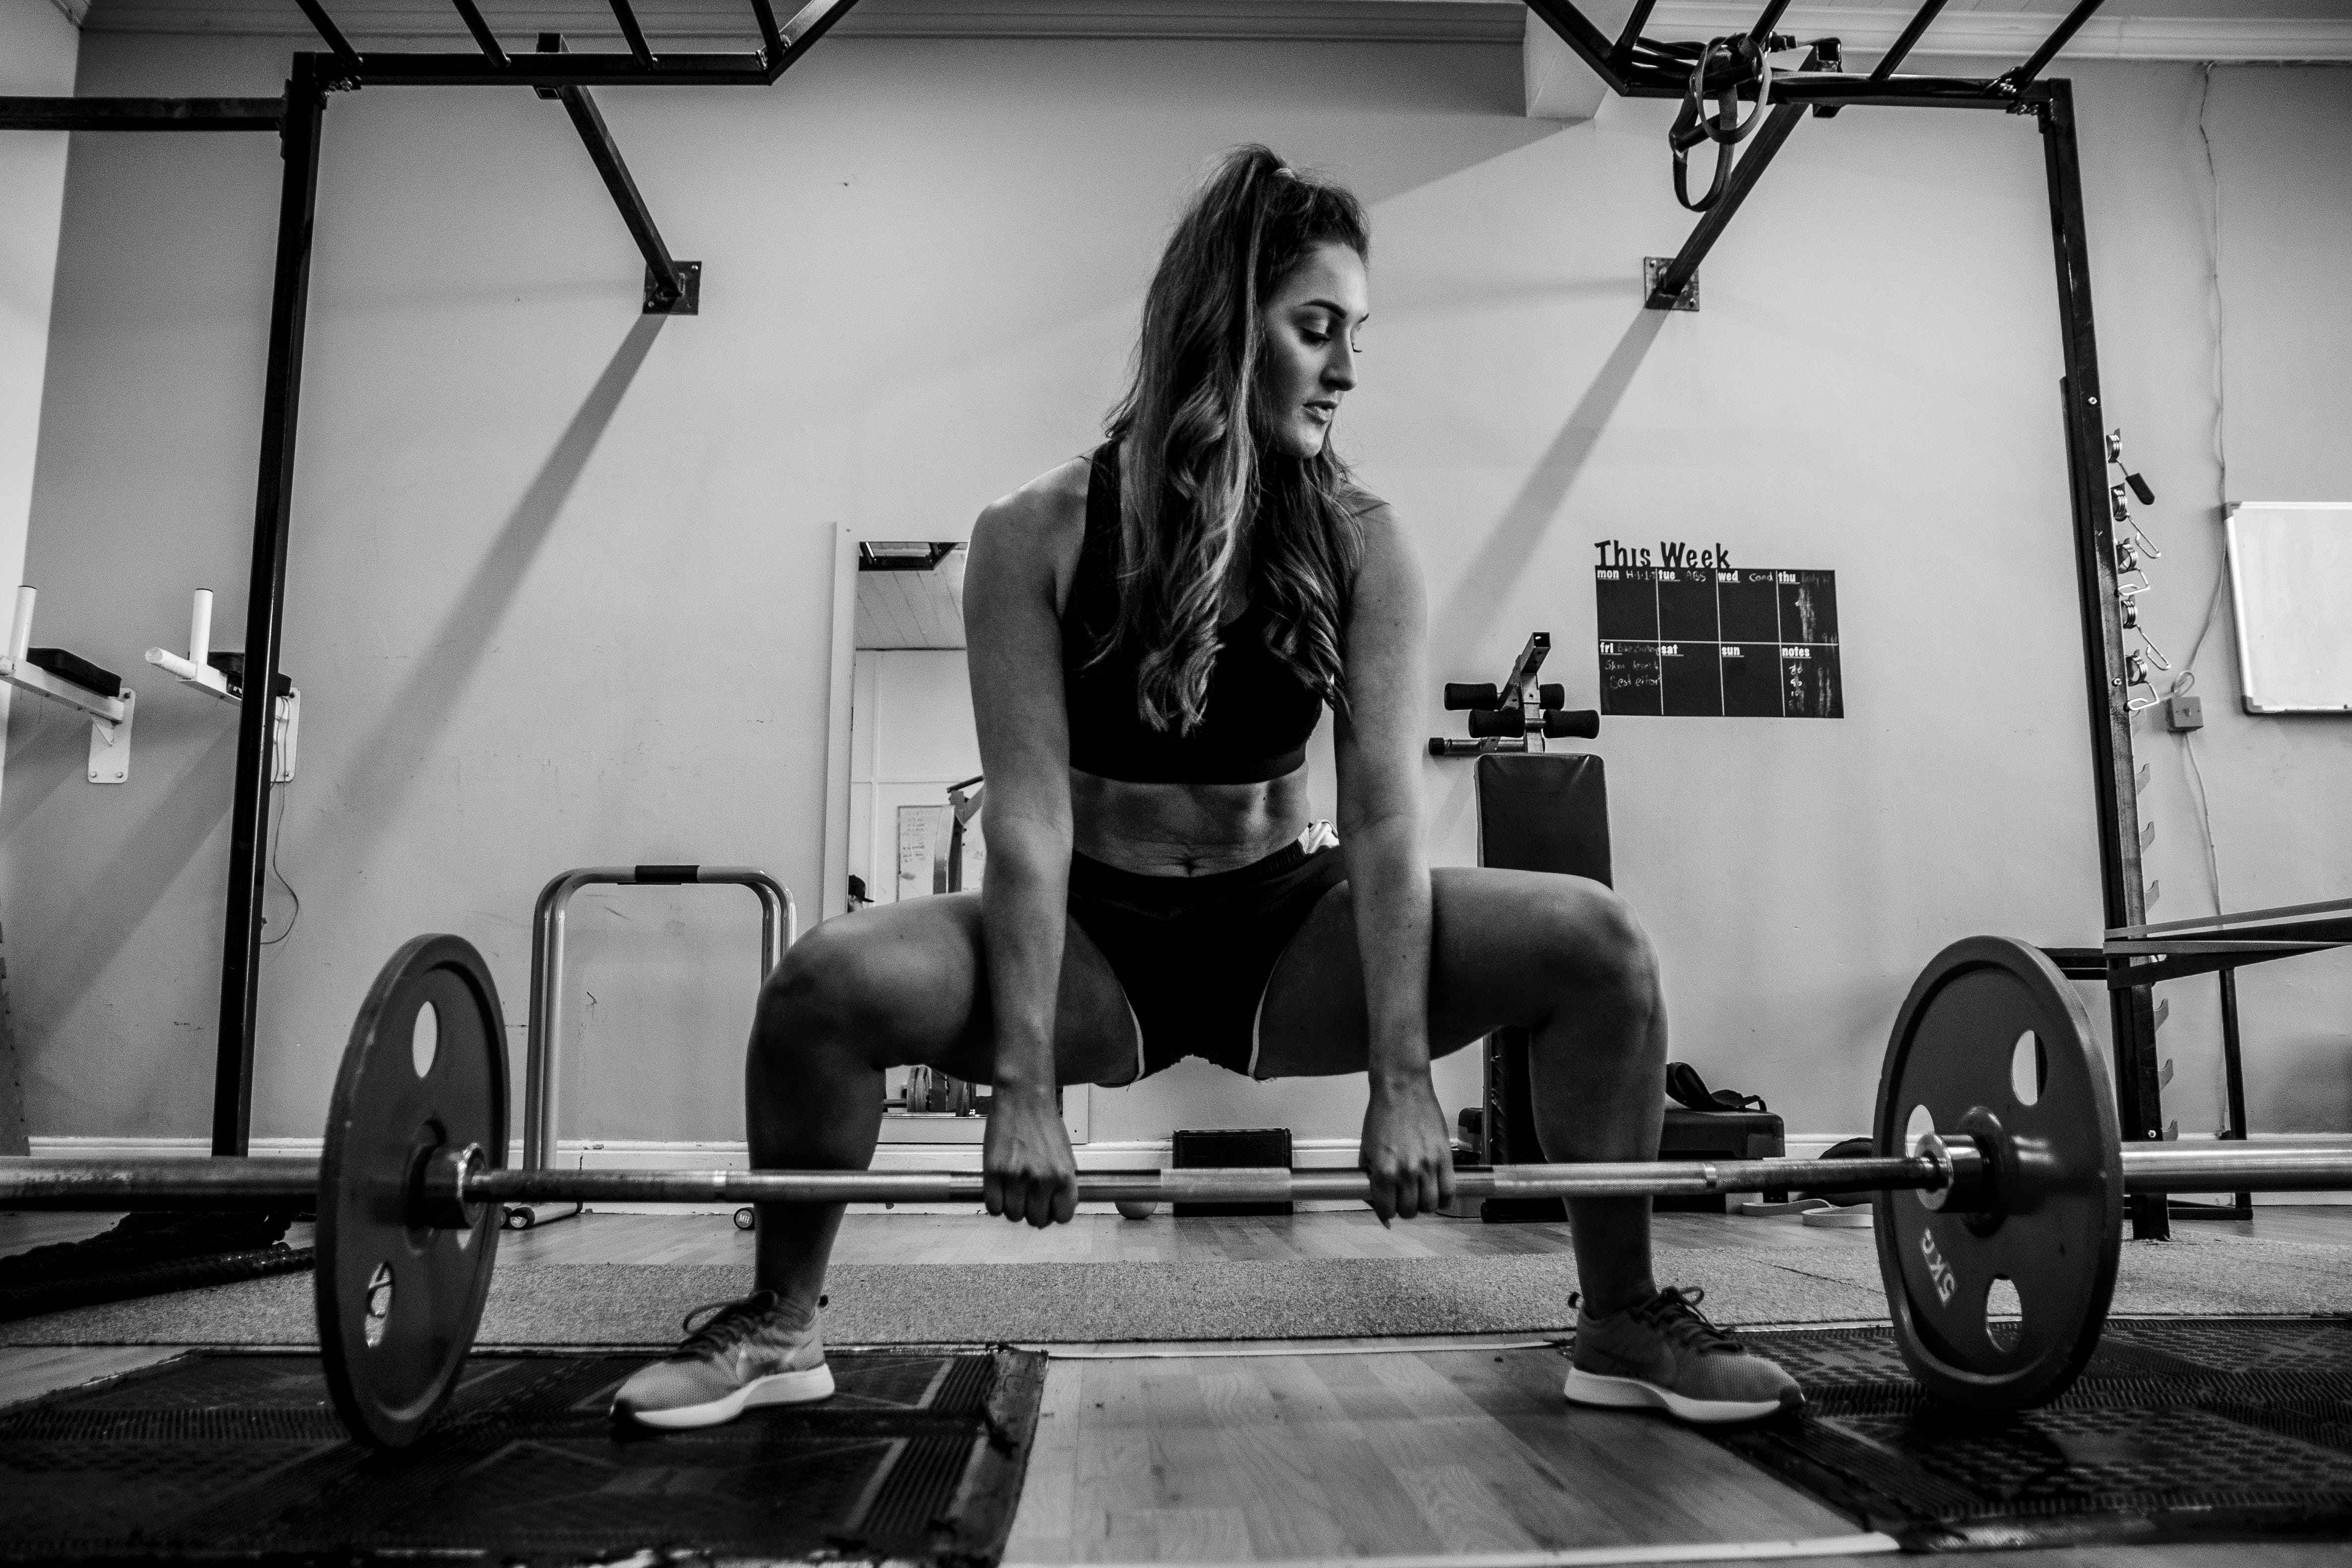 Woman About to Lift a Barbell Off the Floor Inside Gym